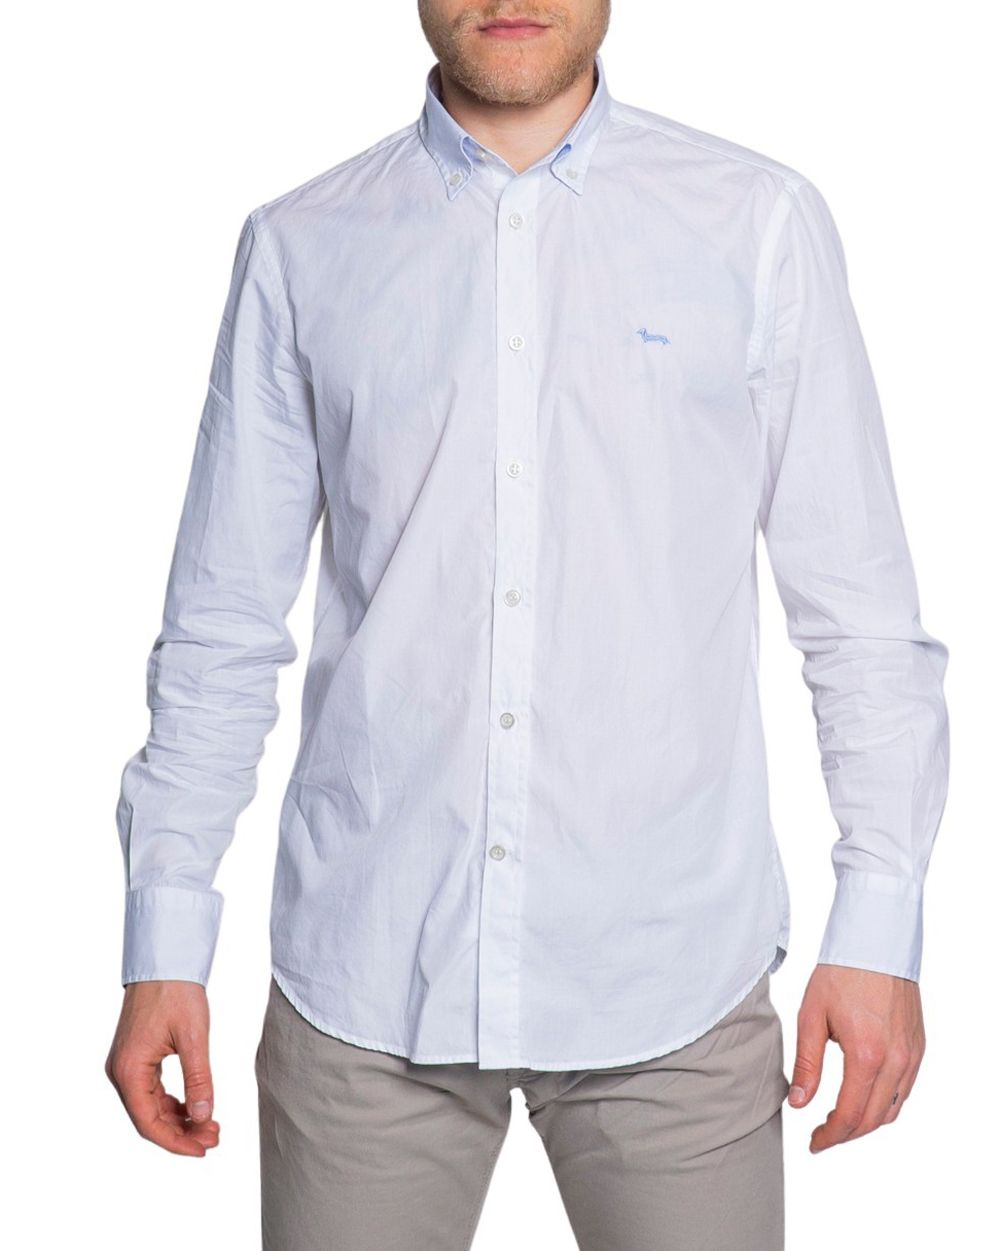 Harmont & Blaine HARMONT & BLAINE MEN'S CRF012006912WHITE WHITE COTTON SHIRT